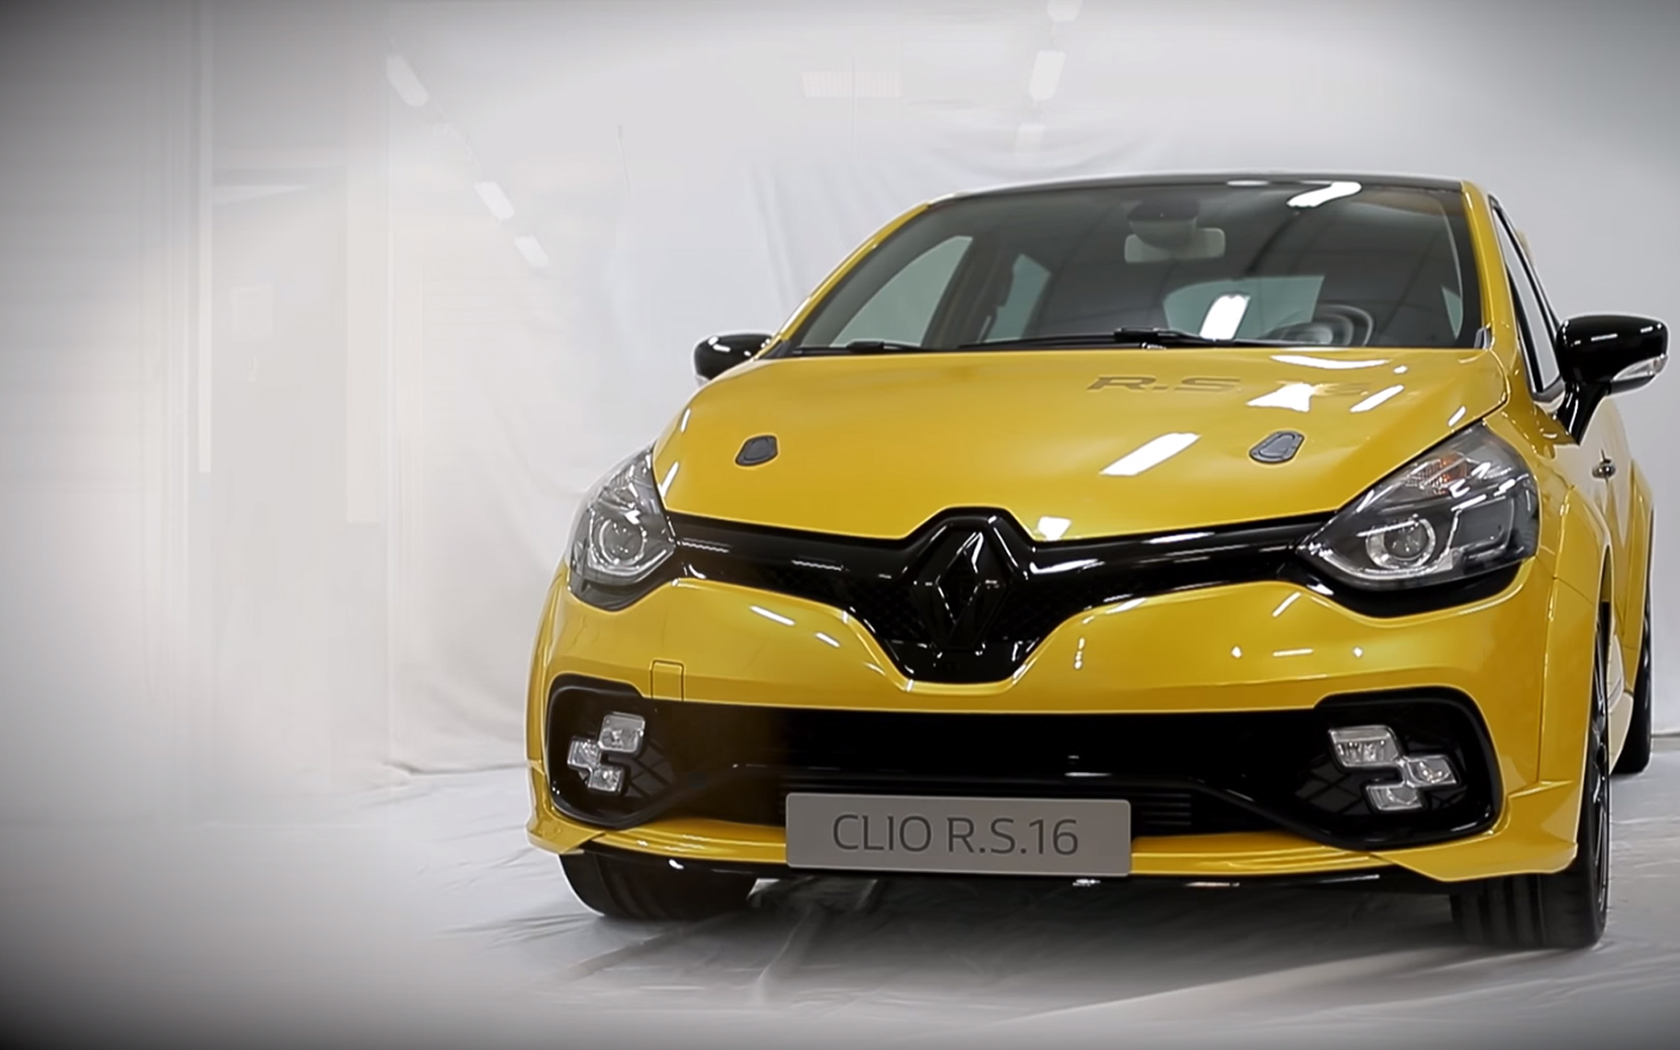 Renault Clio R.S.16 - work in progress - front / avant